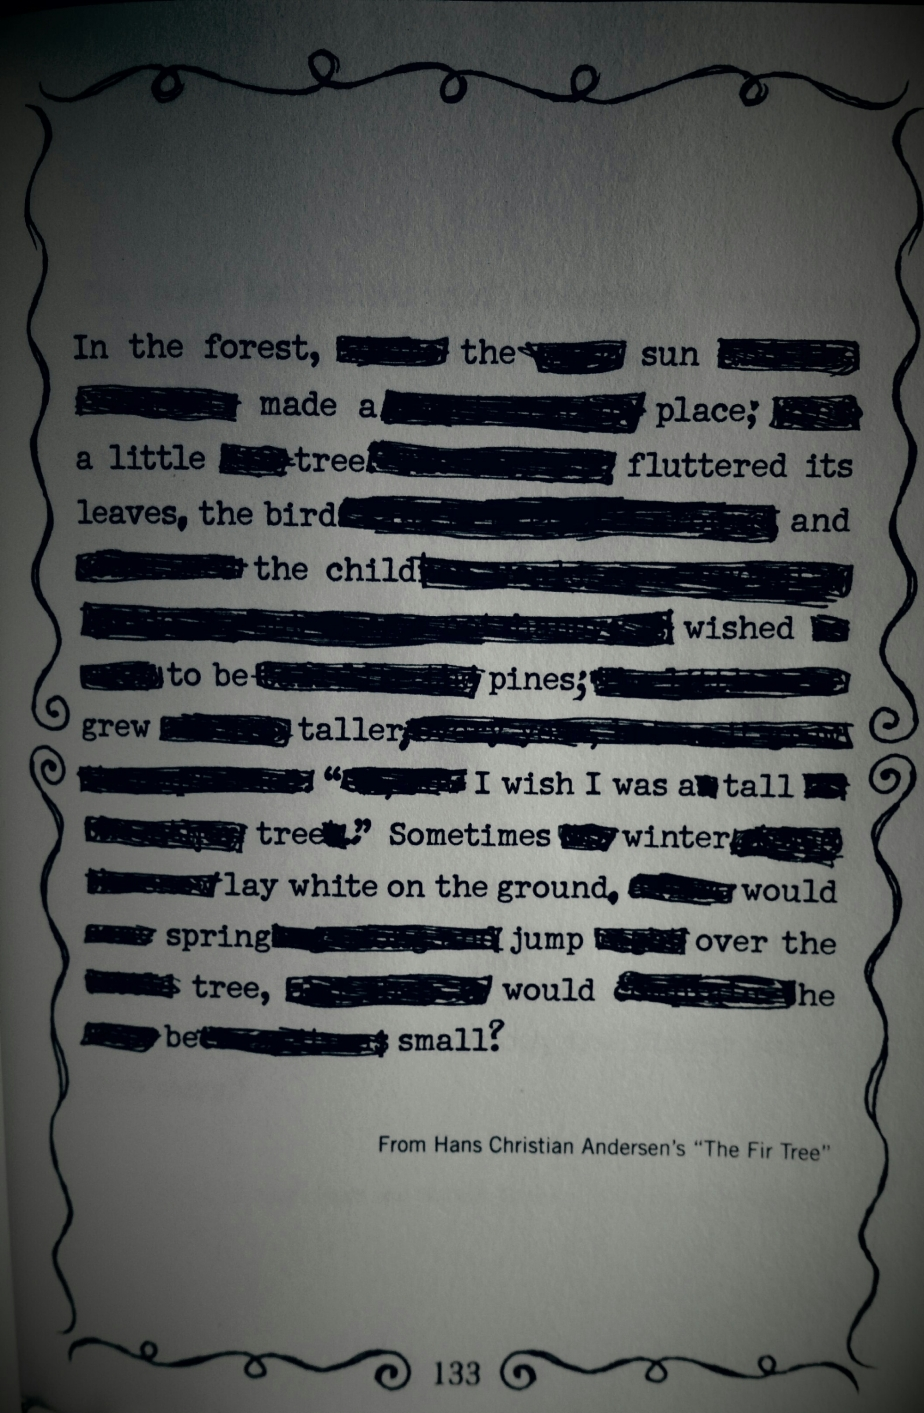 A Tall Tale and a Winter Wish (a blackout poem)